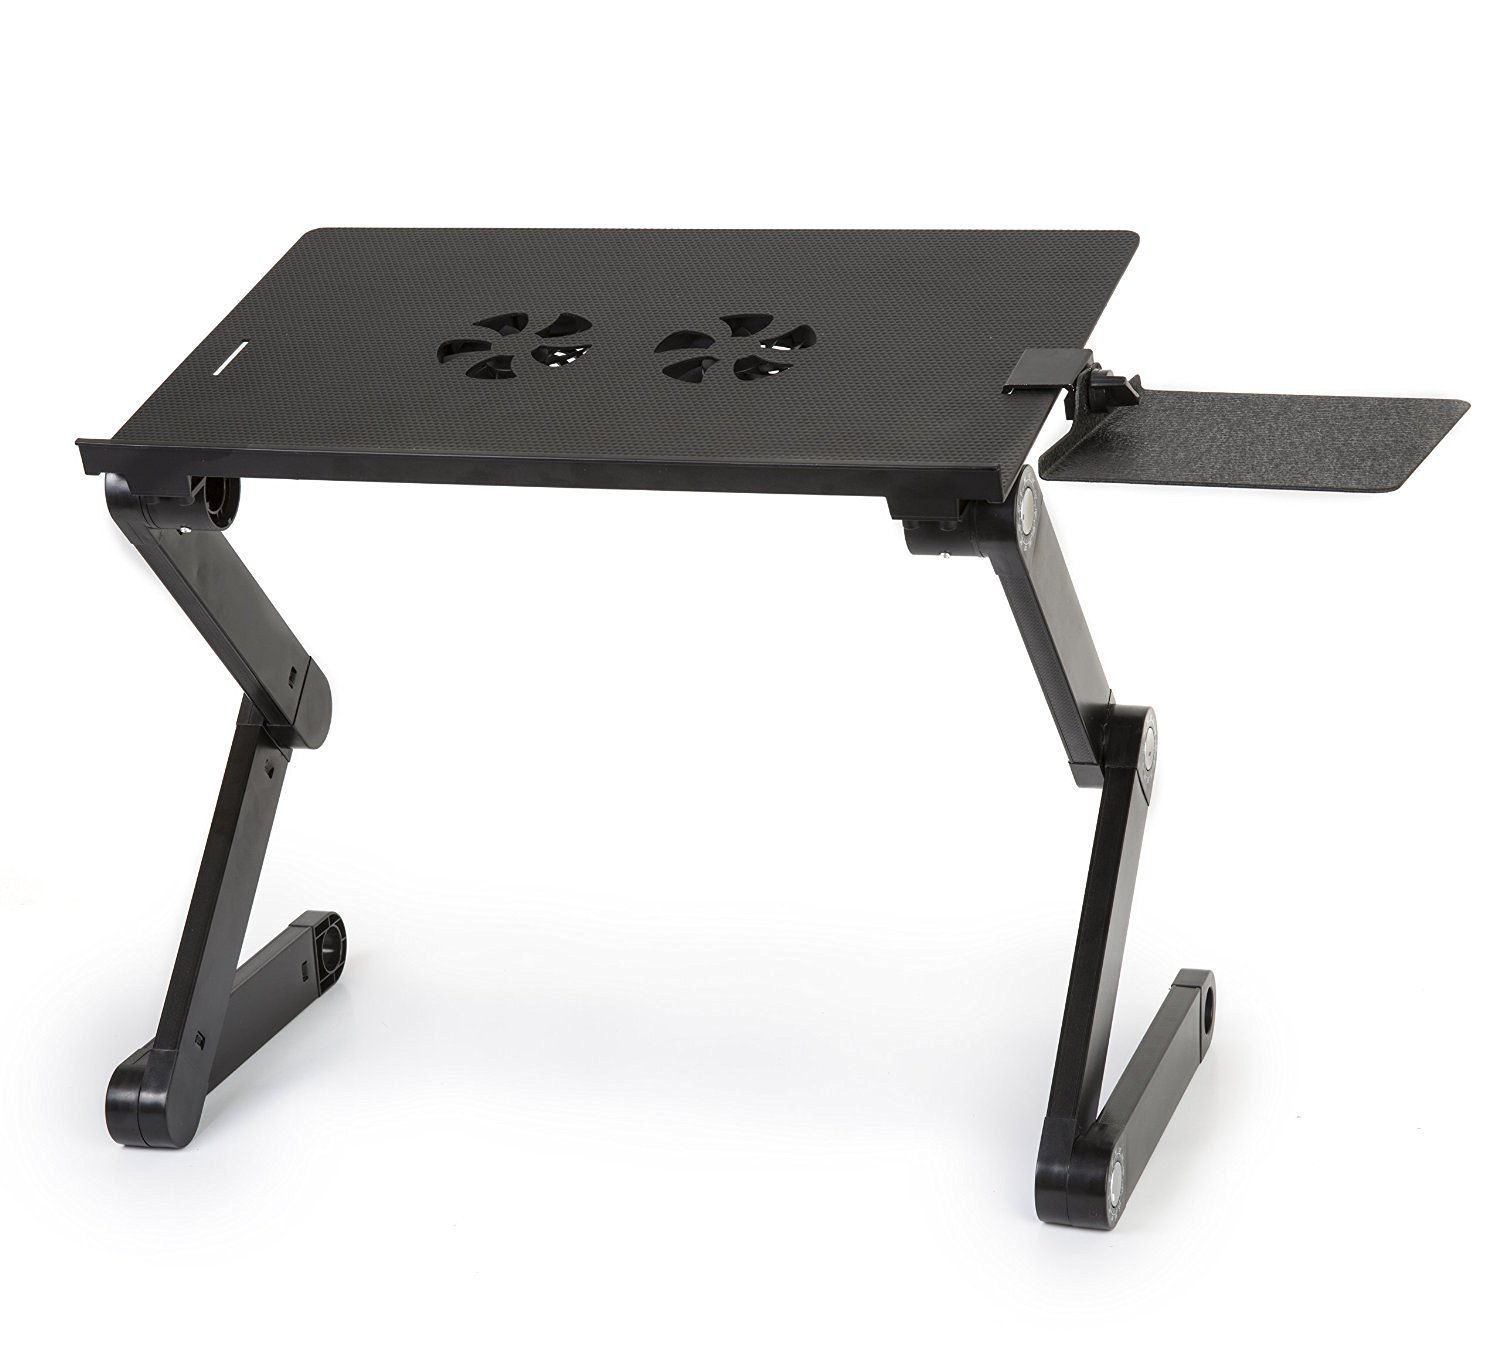 dp tray laptop table computer portable design dual layer tabletop multifuctional book bed ergonomics com amazon furinno adjustable desk vented stand